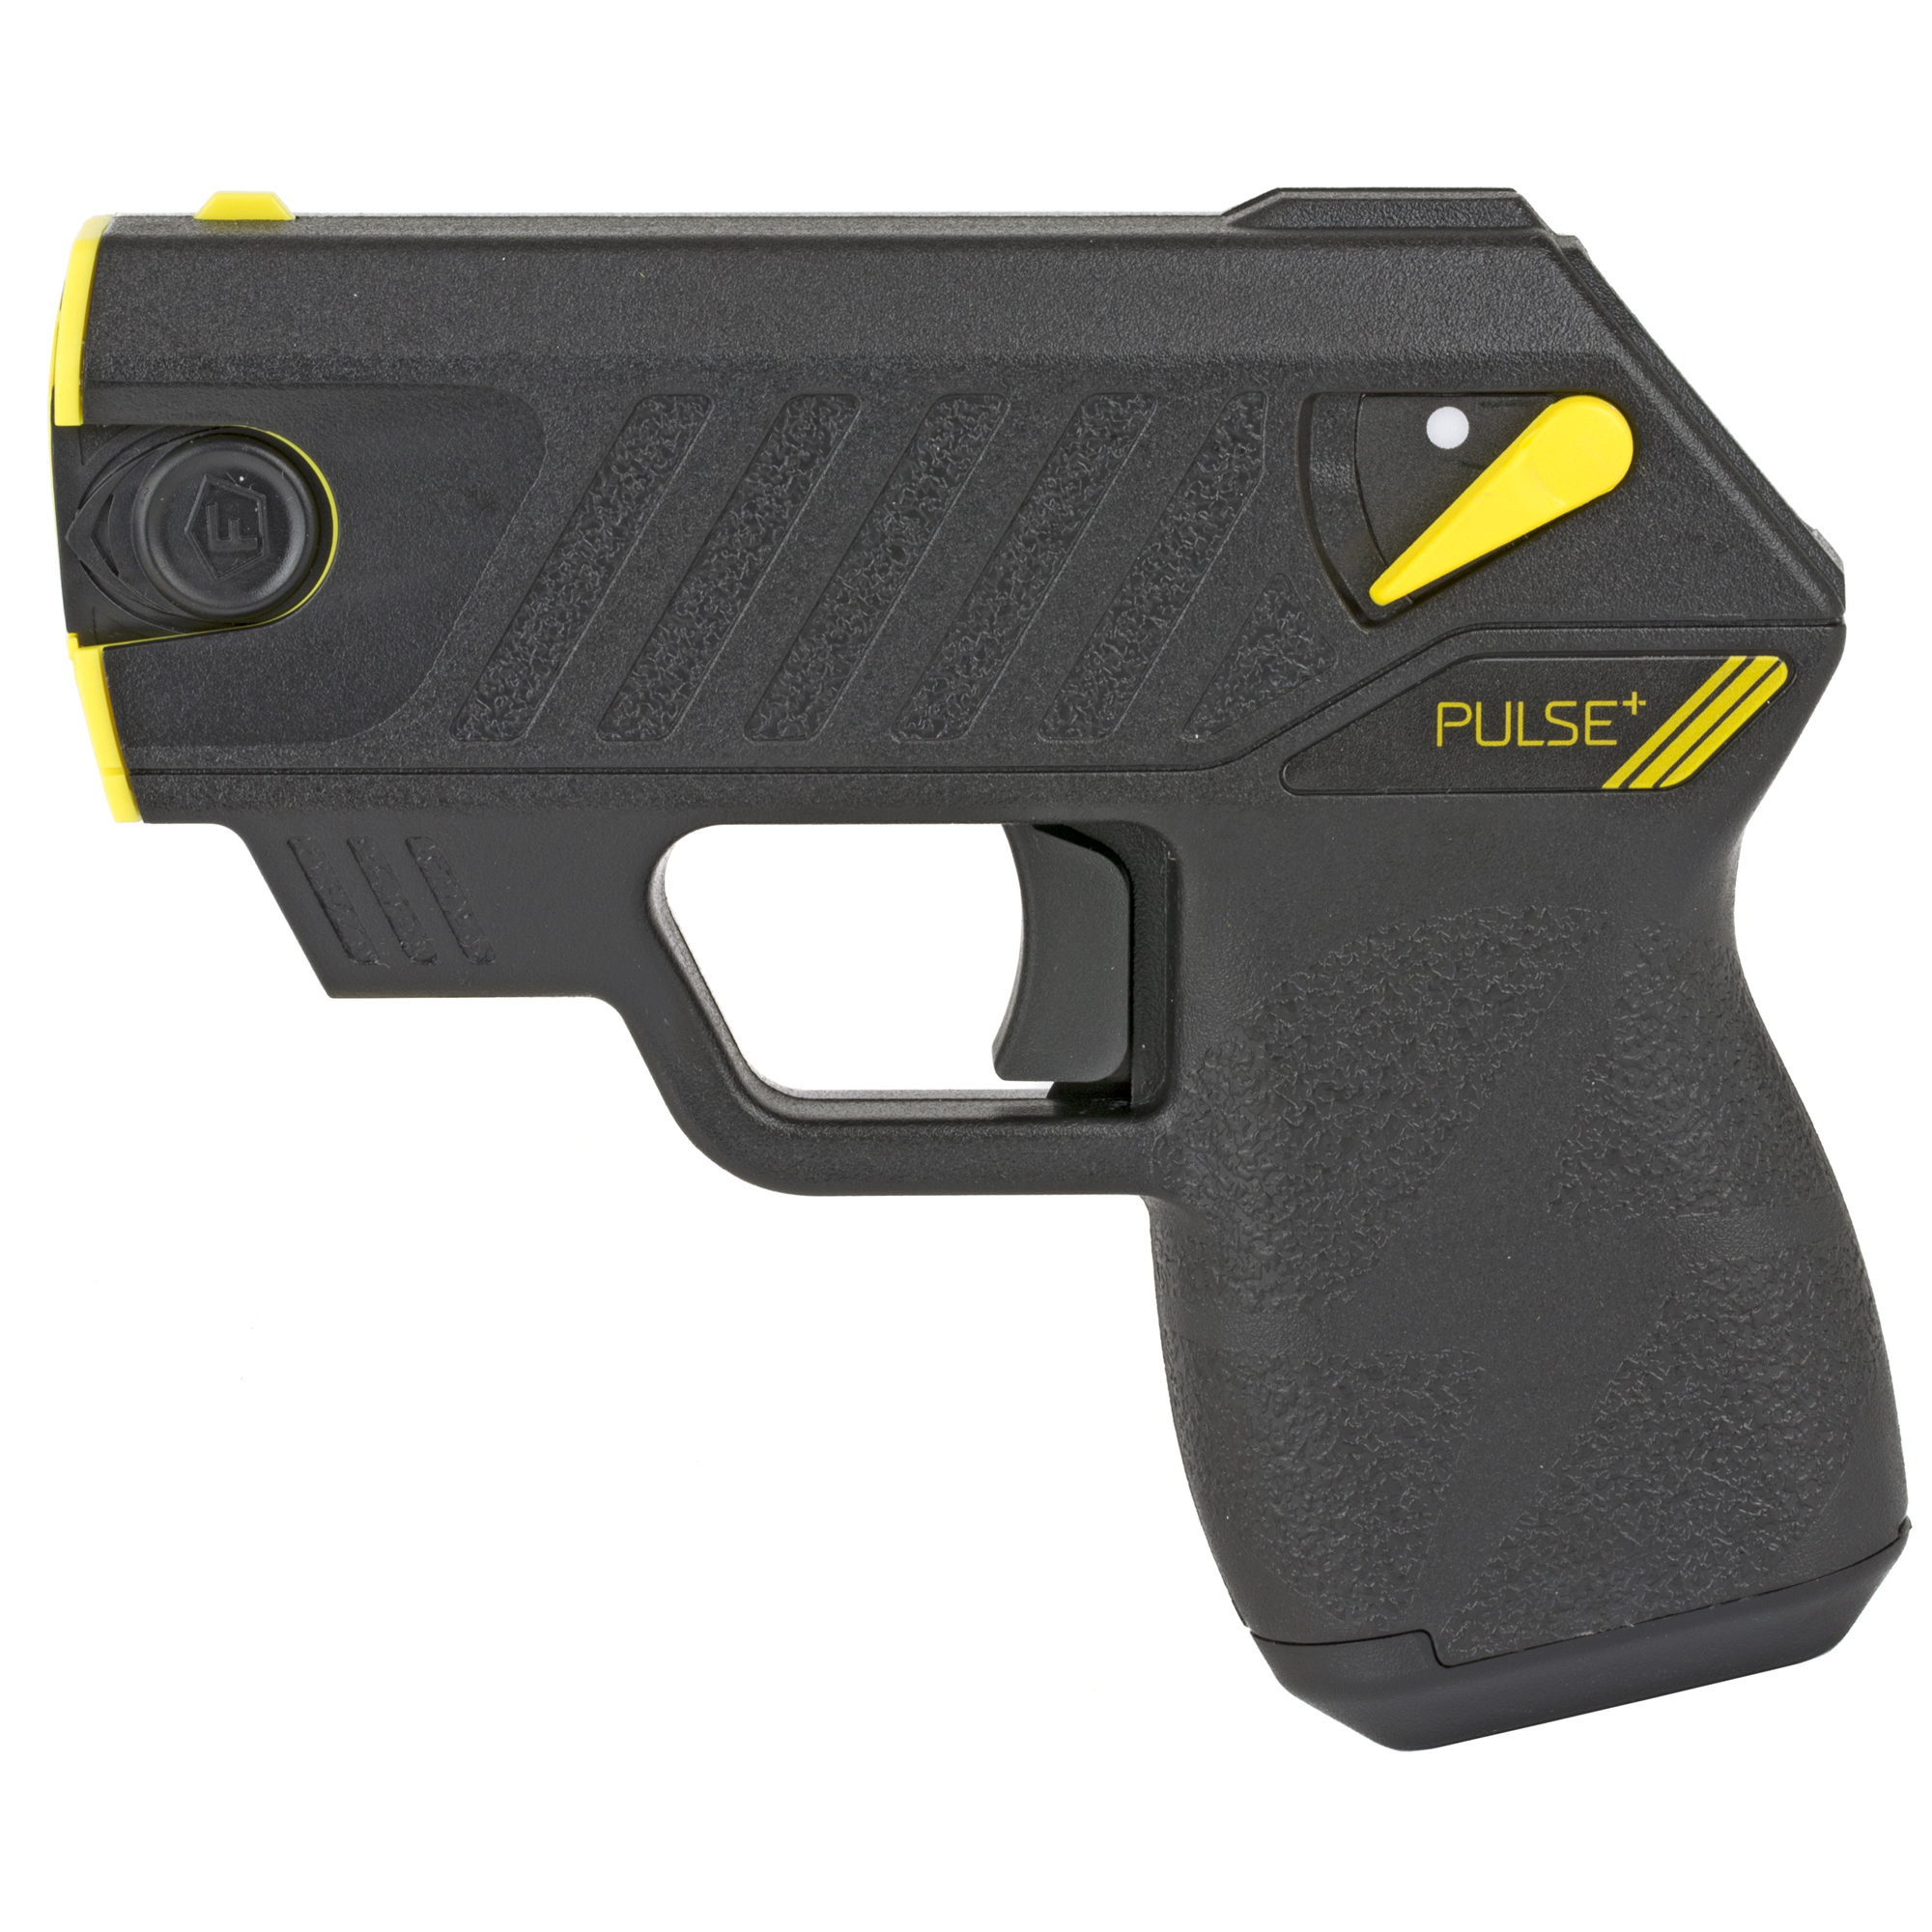 Taser Pulse + W/laser/led/2-cart/tgt